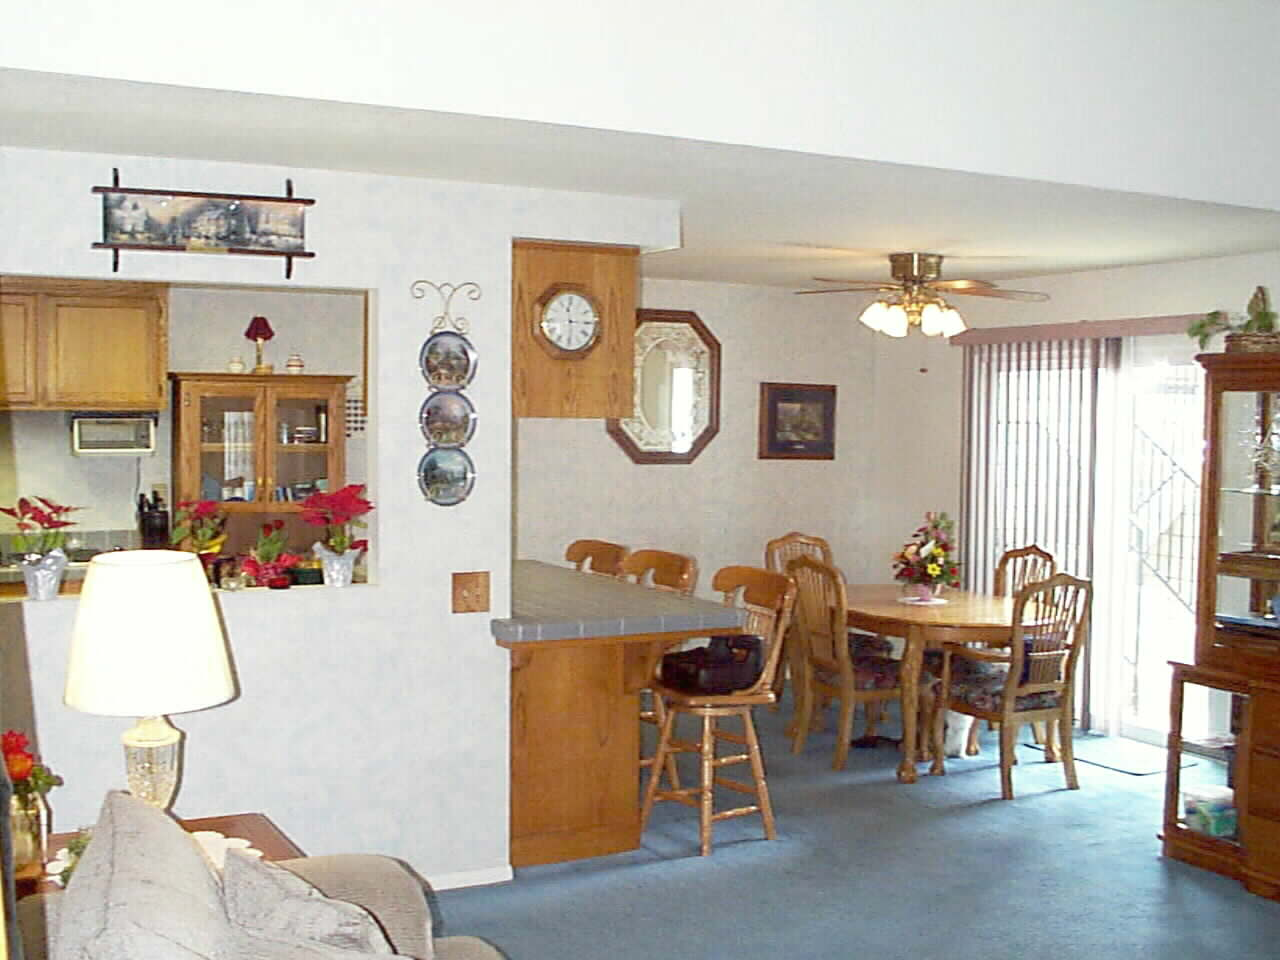 Bright and Cheerful... Spacious yet Cozy... Move in Spotless !